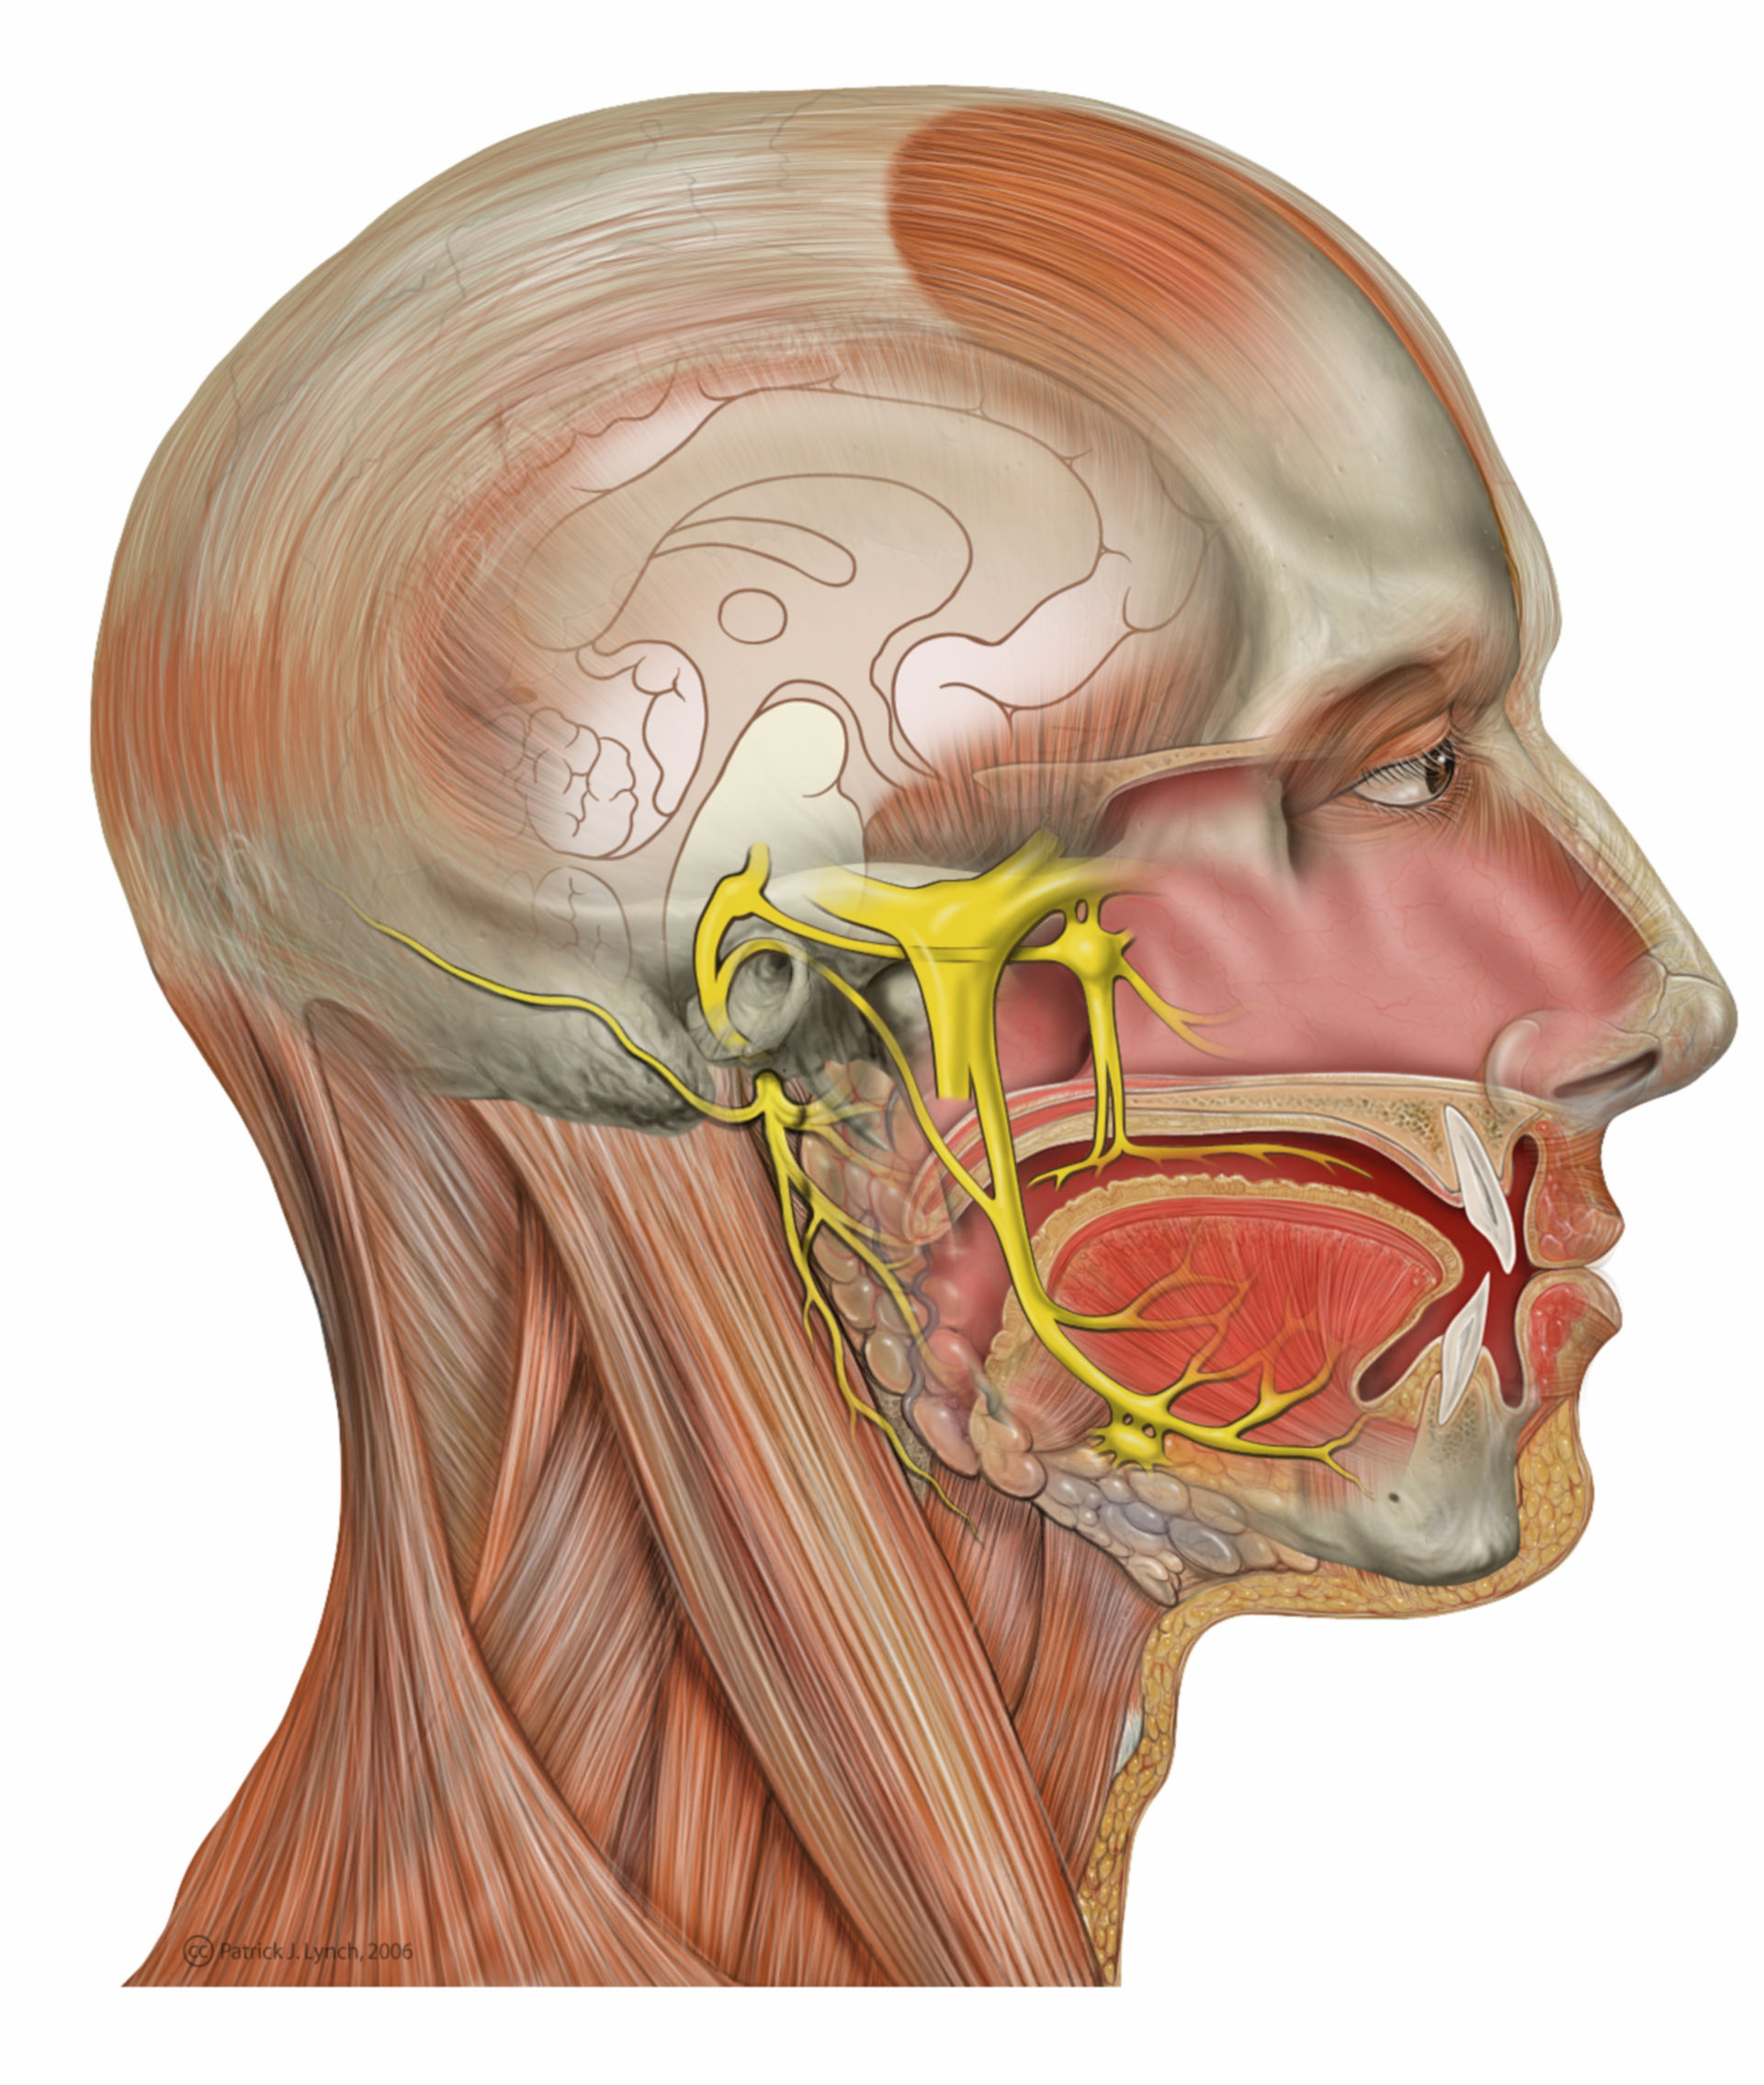 Head deep facial and trigeminal nerves